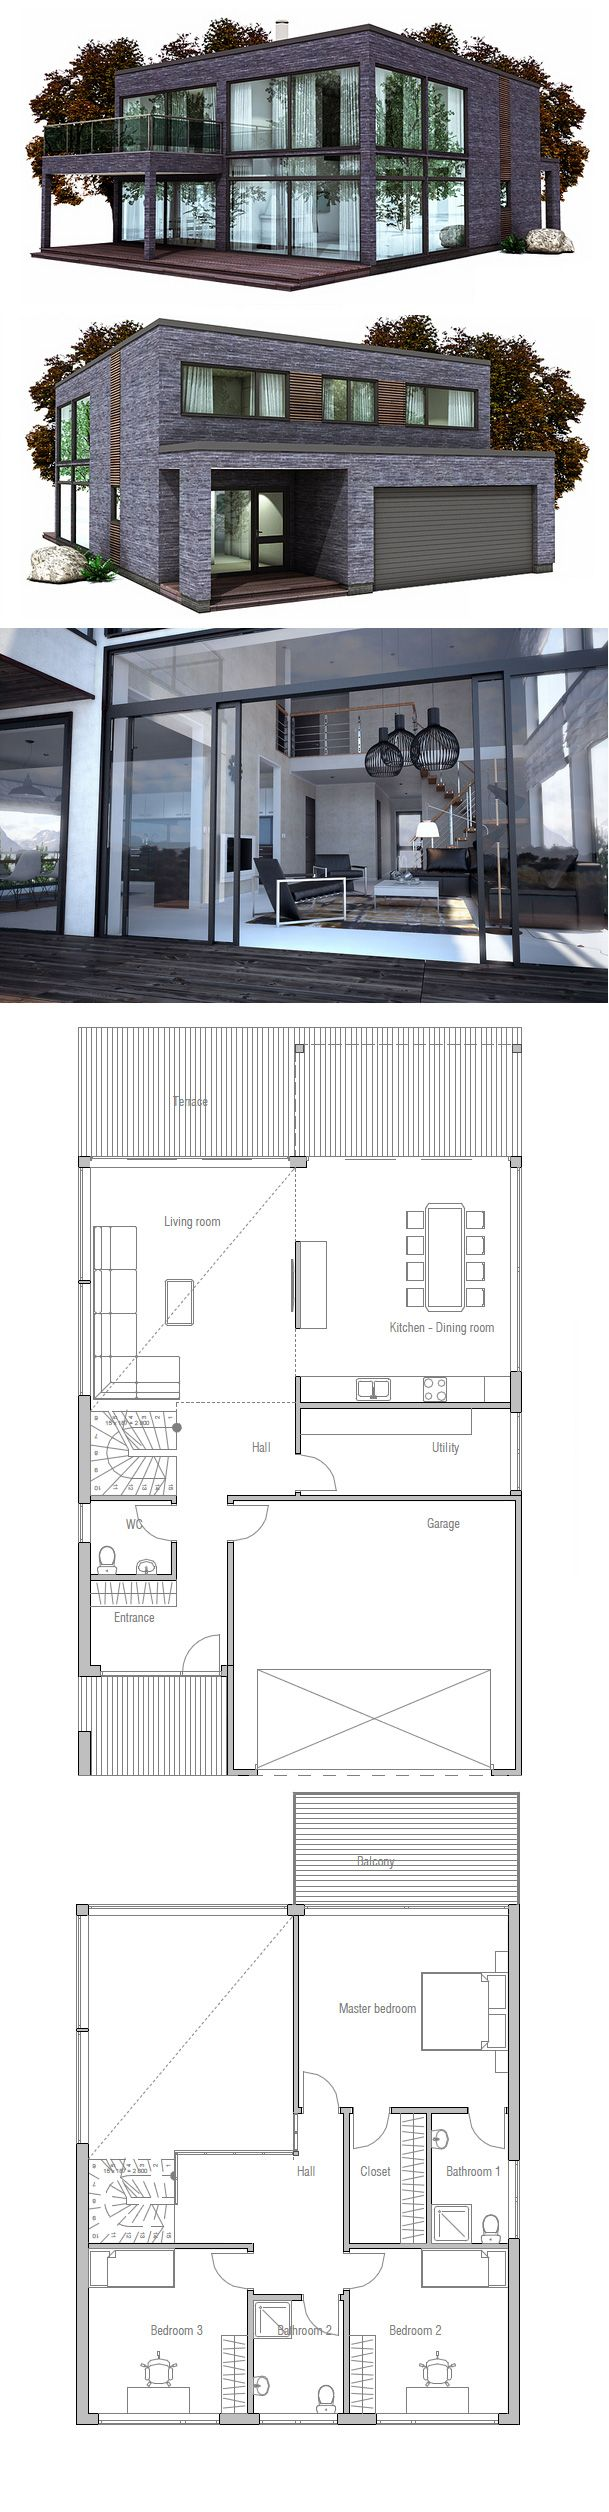 156 best images about beach house narrow lot plans on for Minimalist narrow house plans